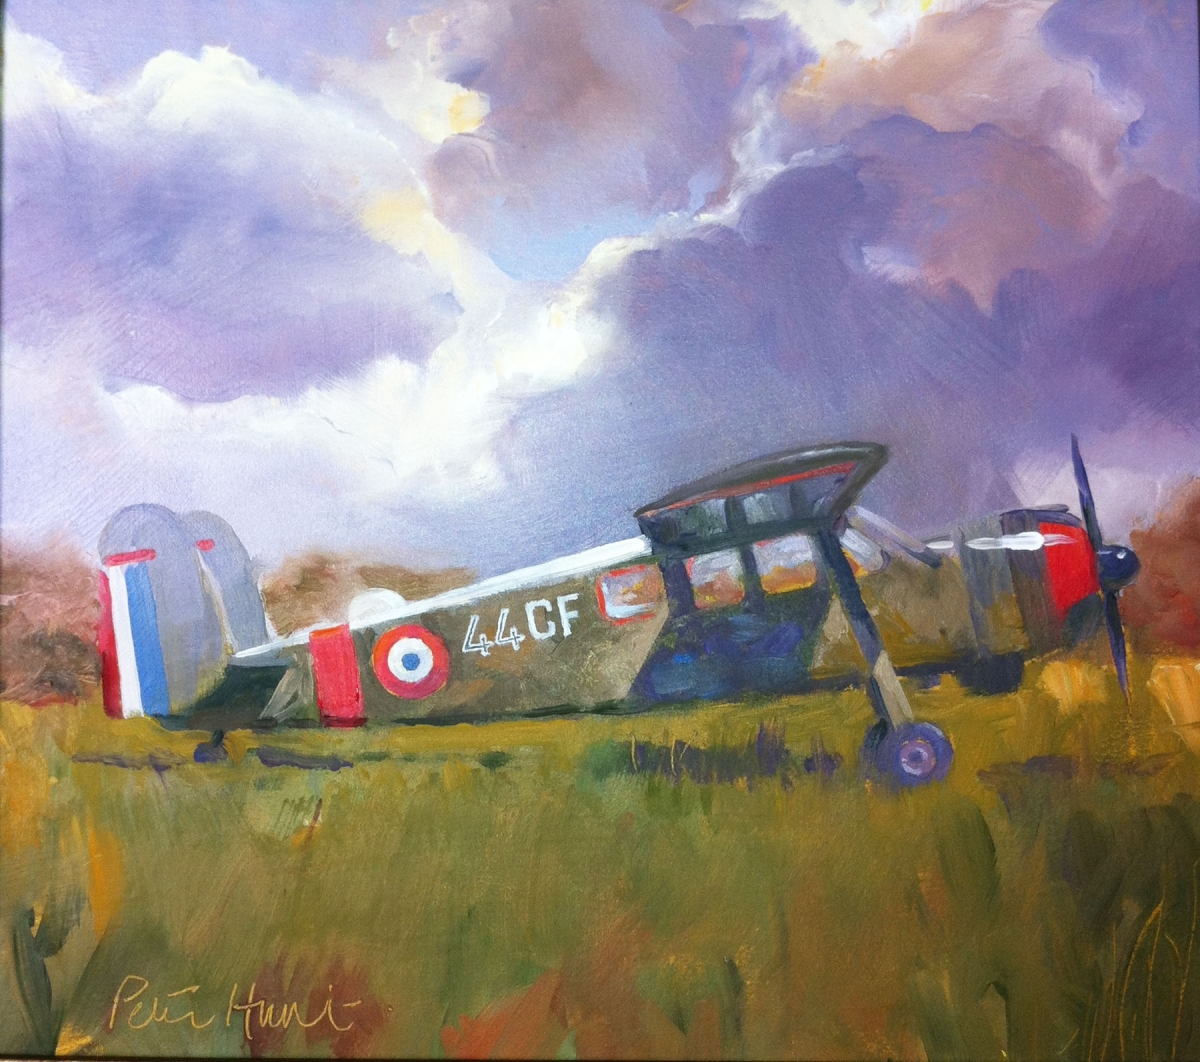 Painting of French vintage aircraft by Peter Hunt (large view)